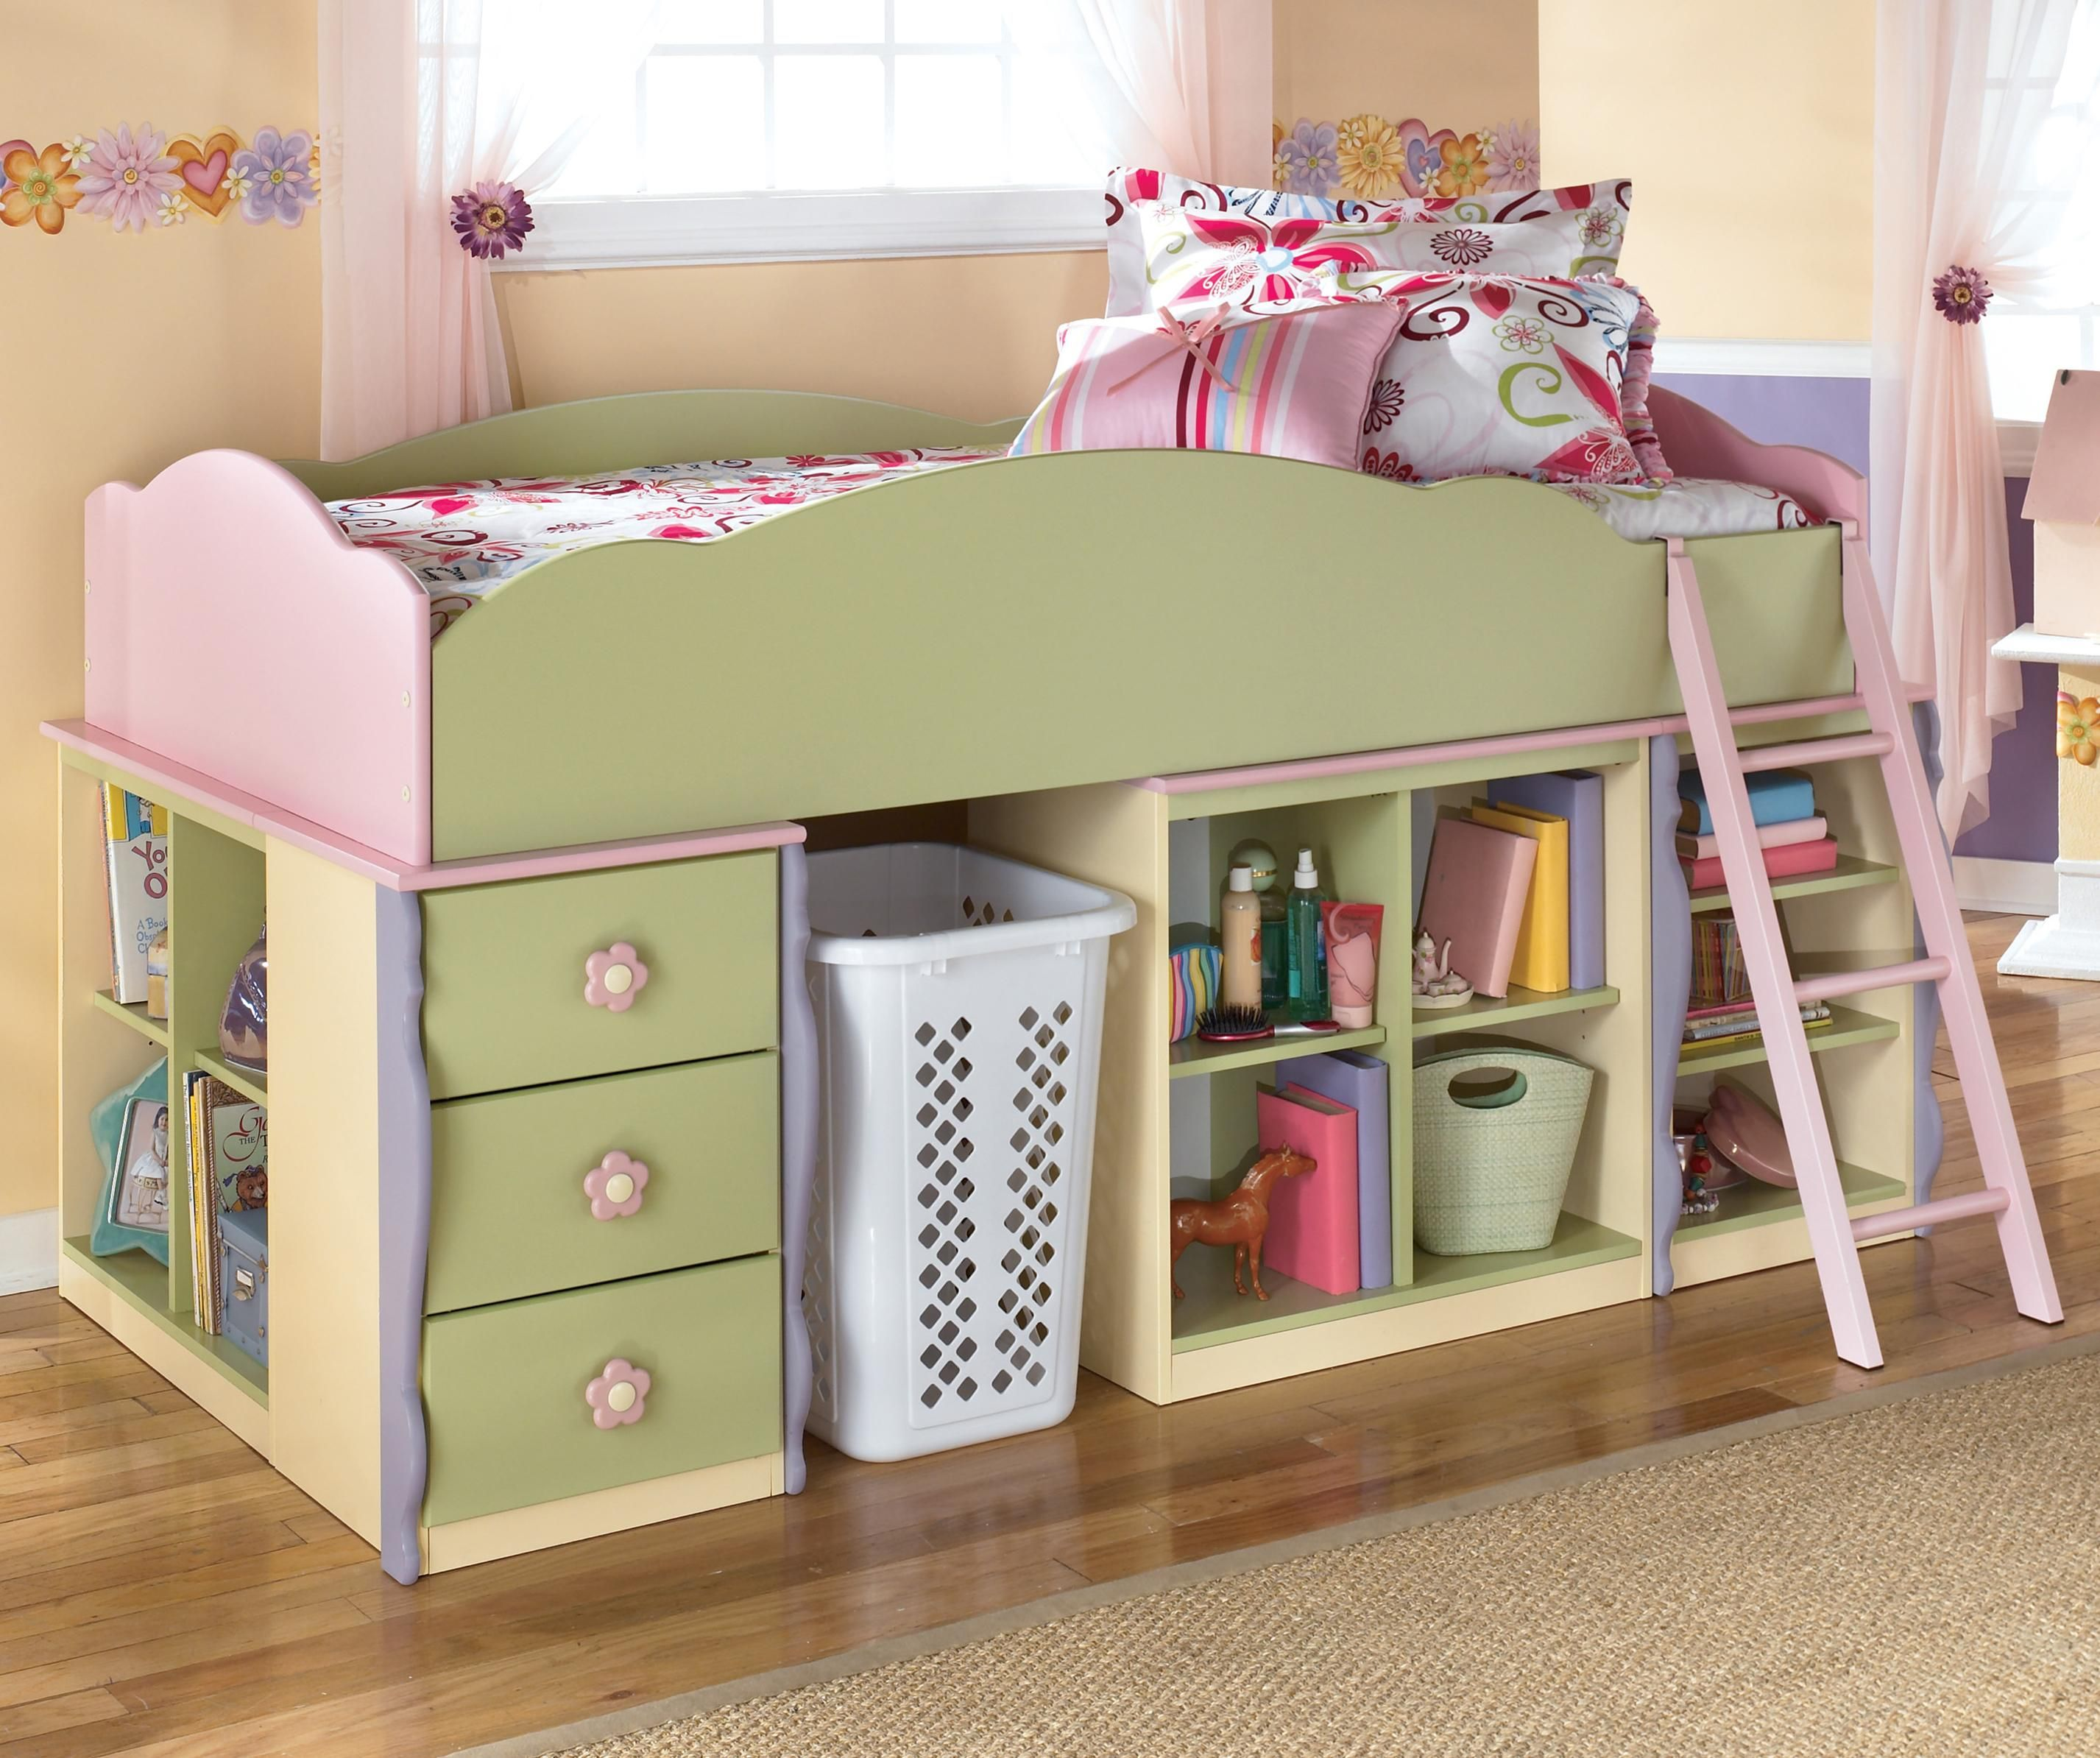 Doll House Loft Bed With Bin Storage U0026 Space For Basket By Signature Design  By Ashley   Furniture U0026 Bedding   Loft Bed Madison, Middleton, Janesville,  ...